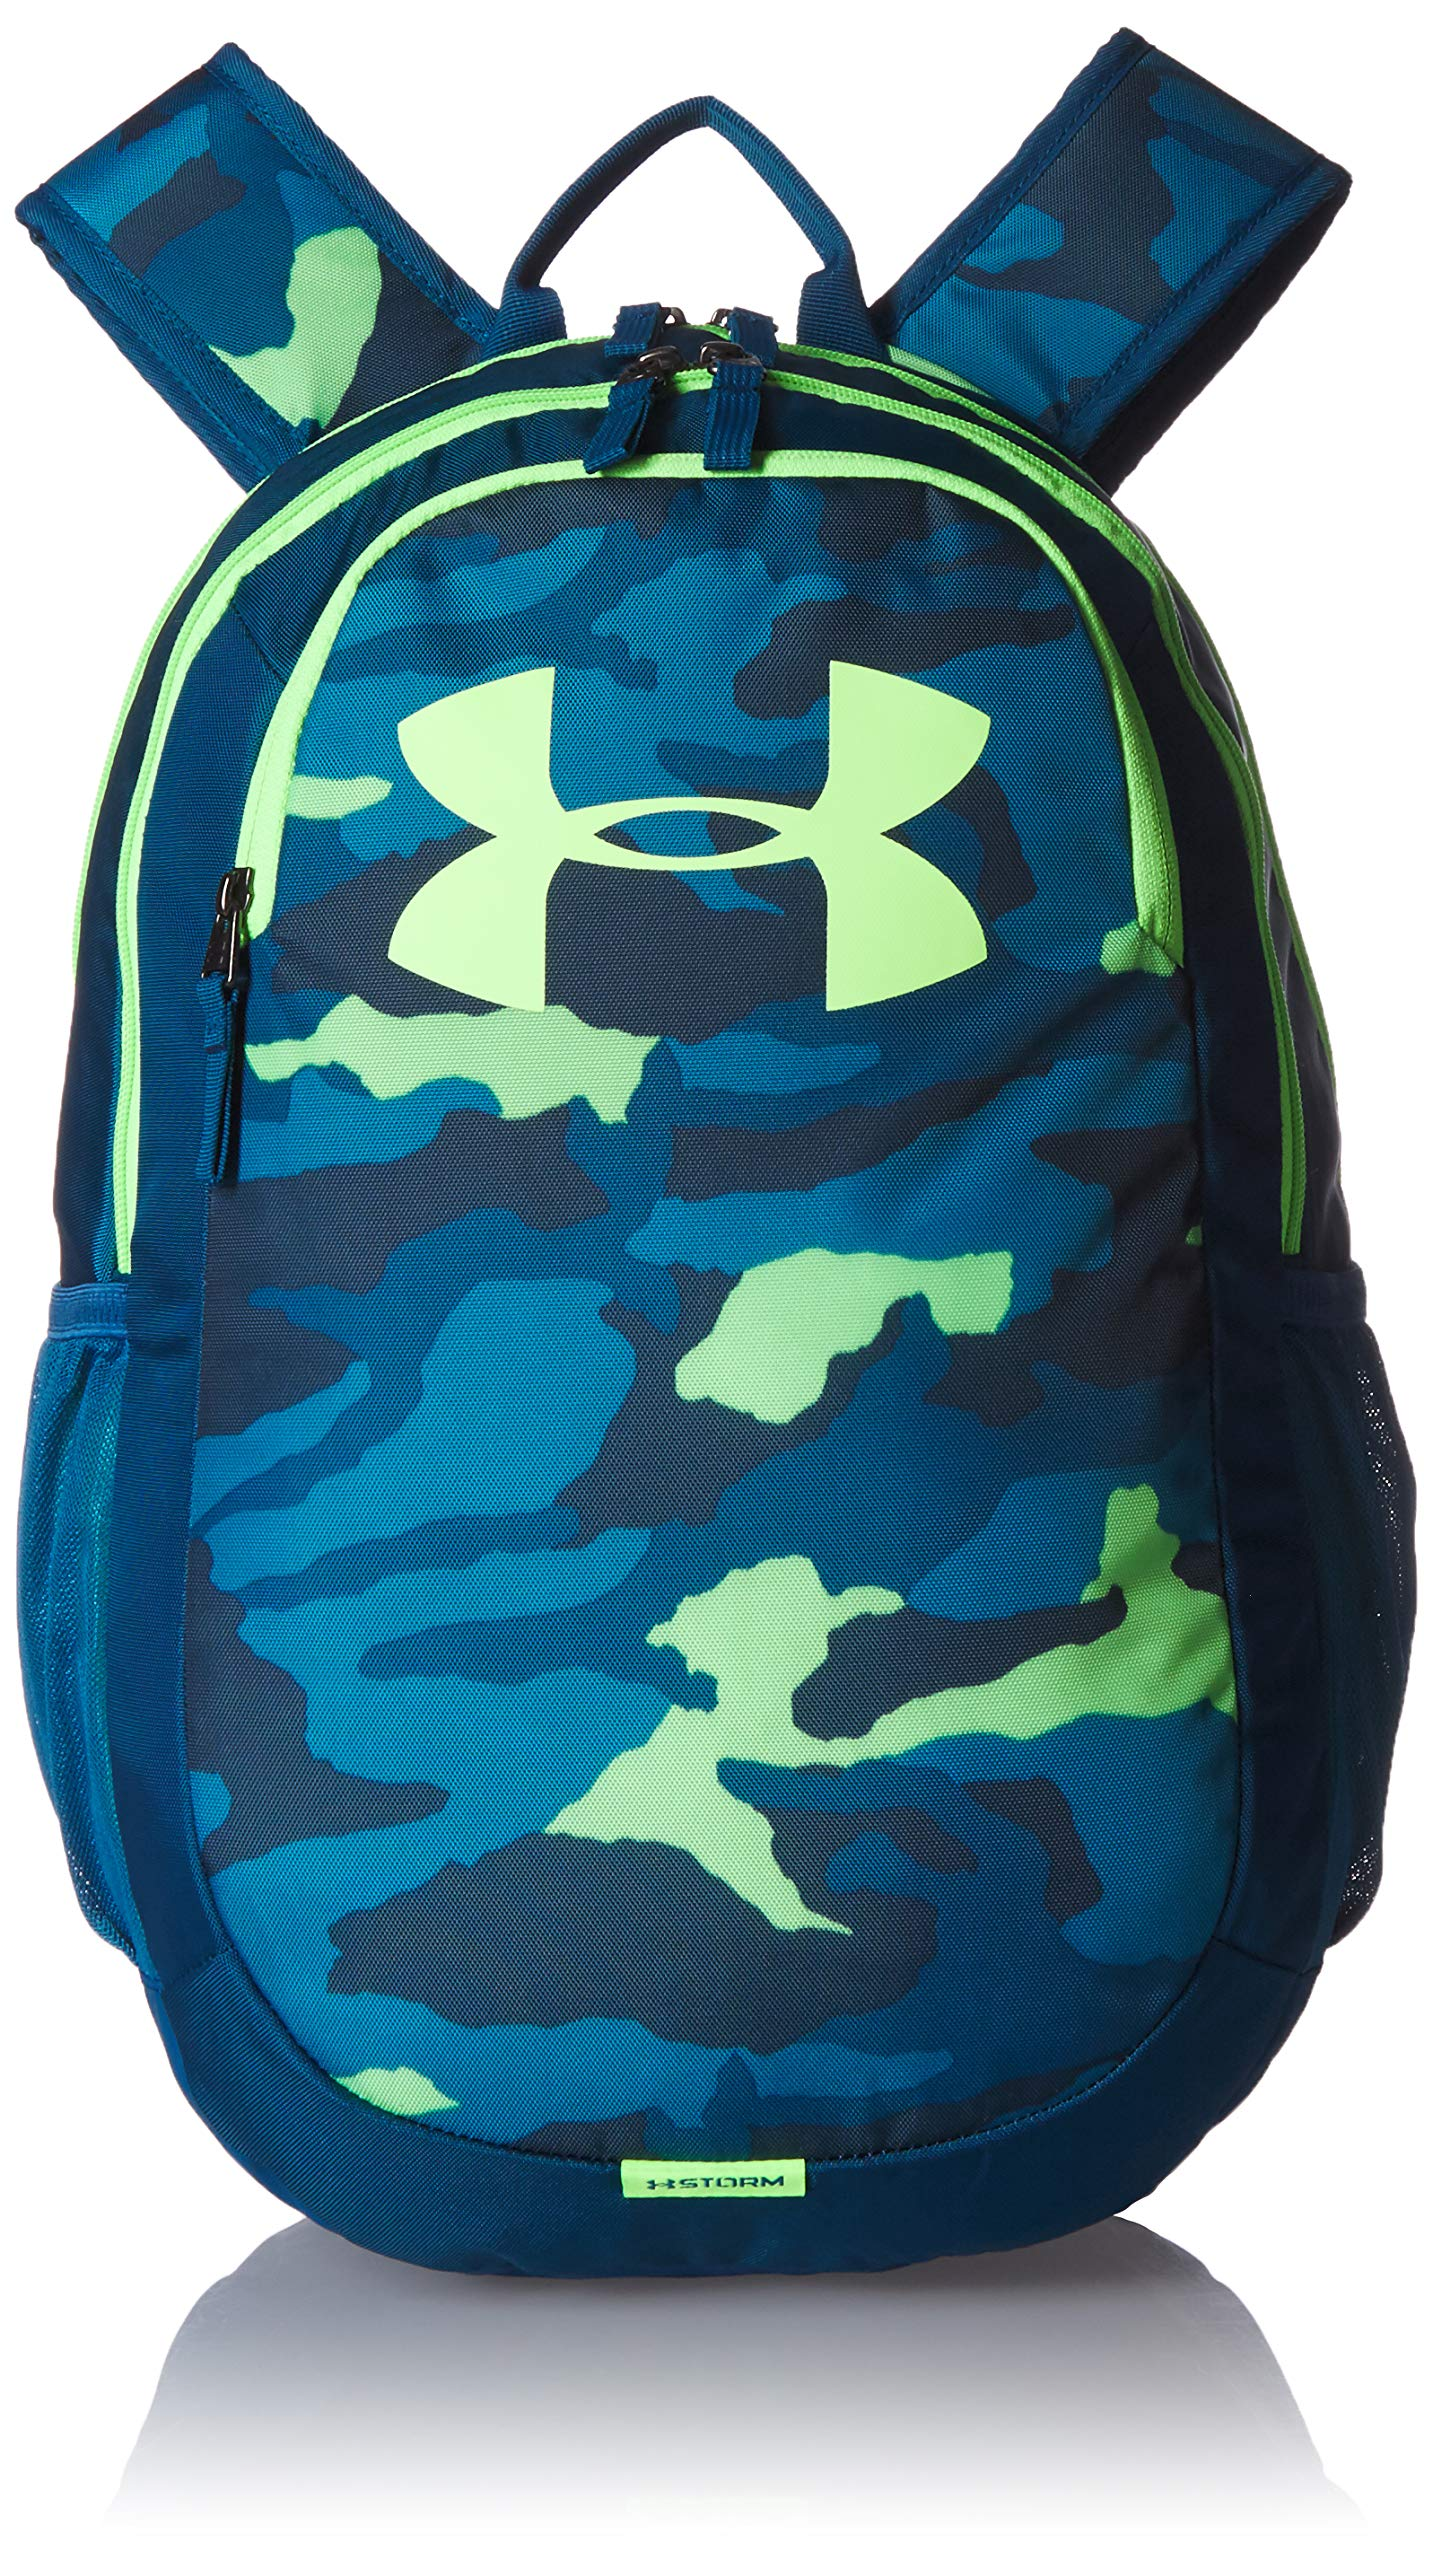 Under Armour Scrimmage Backpack 2.0, Teal Rush (454)/Lime Light, One Size Fits All by Under Armour